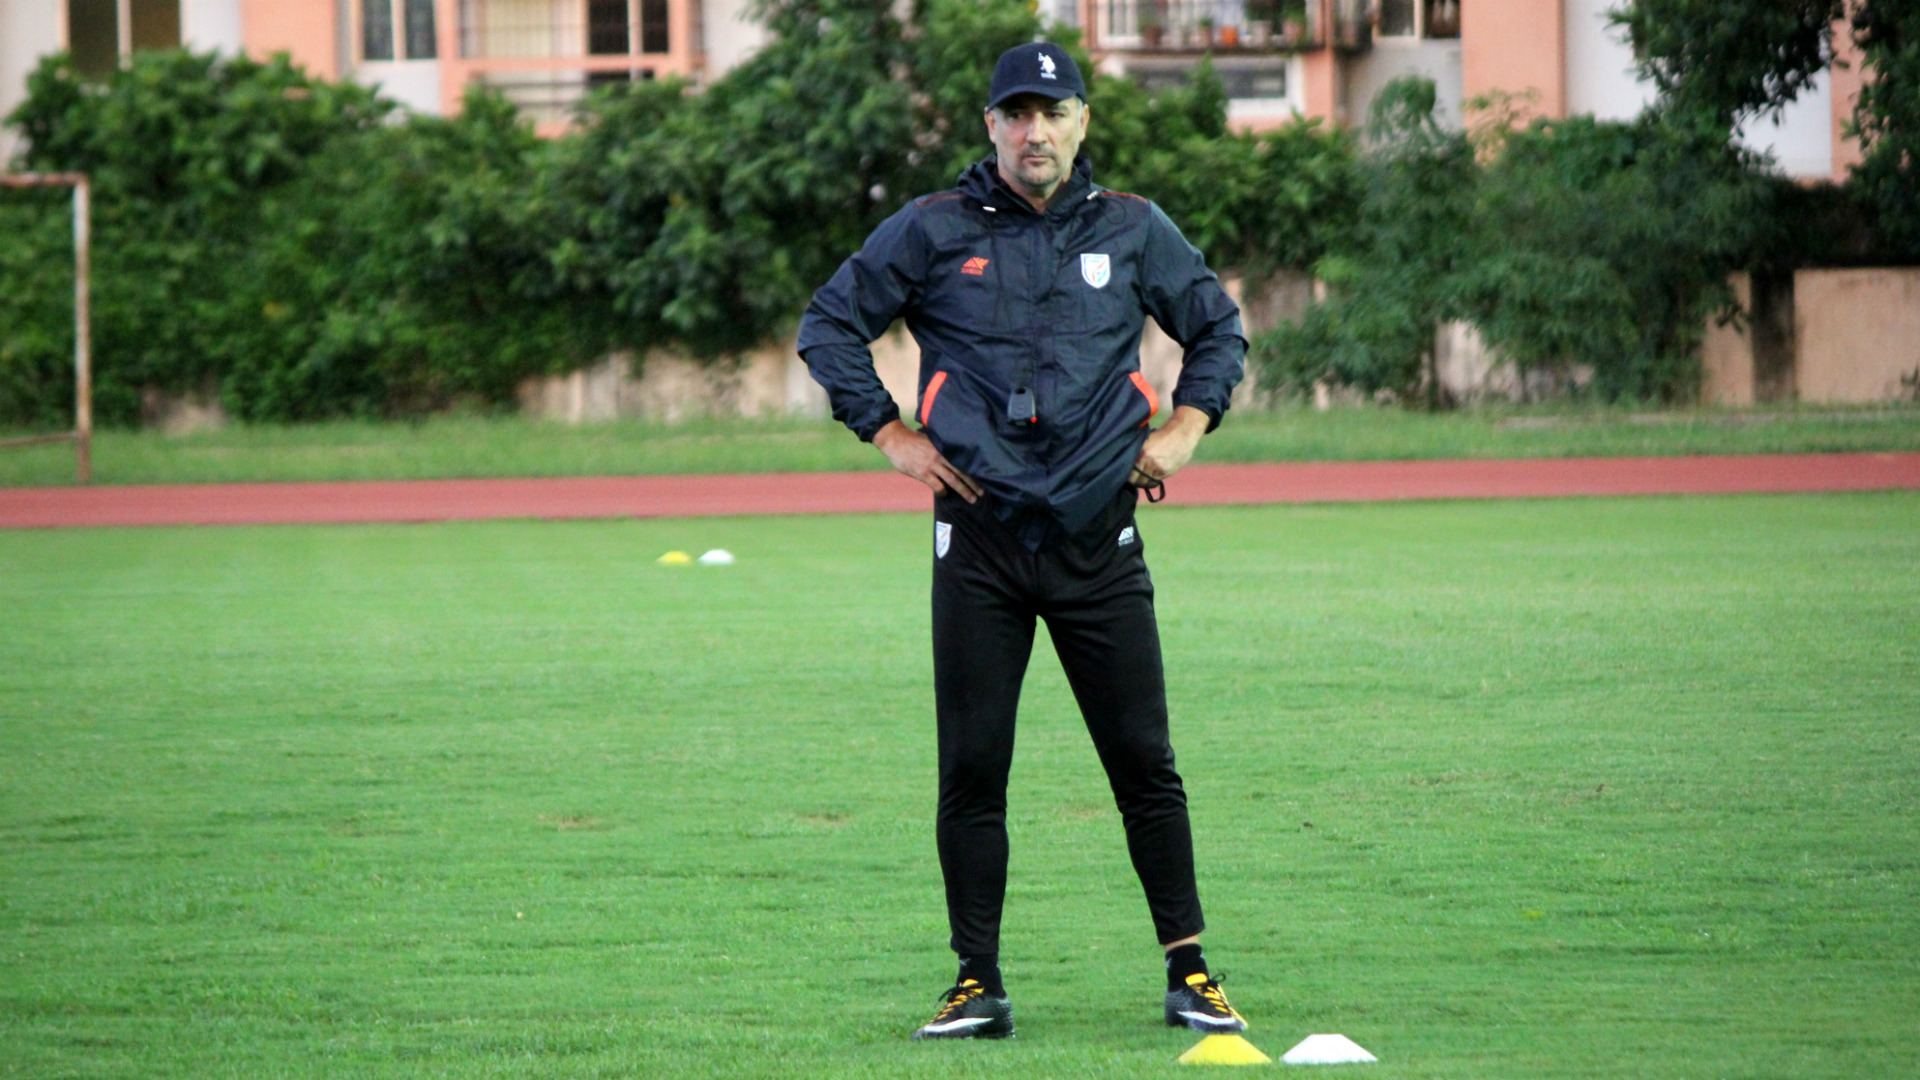 India Football Coach Expects More Support Before Bangladesh Clash